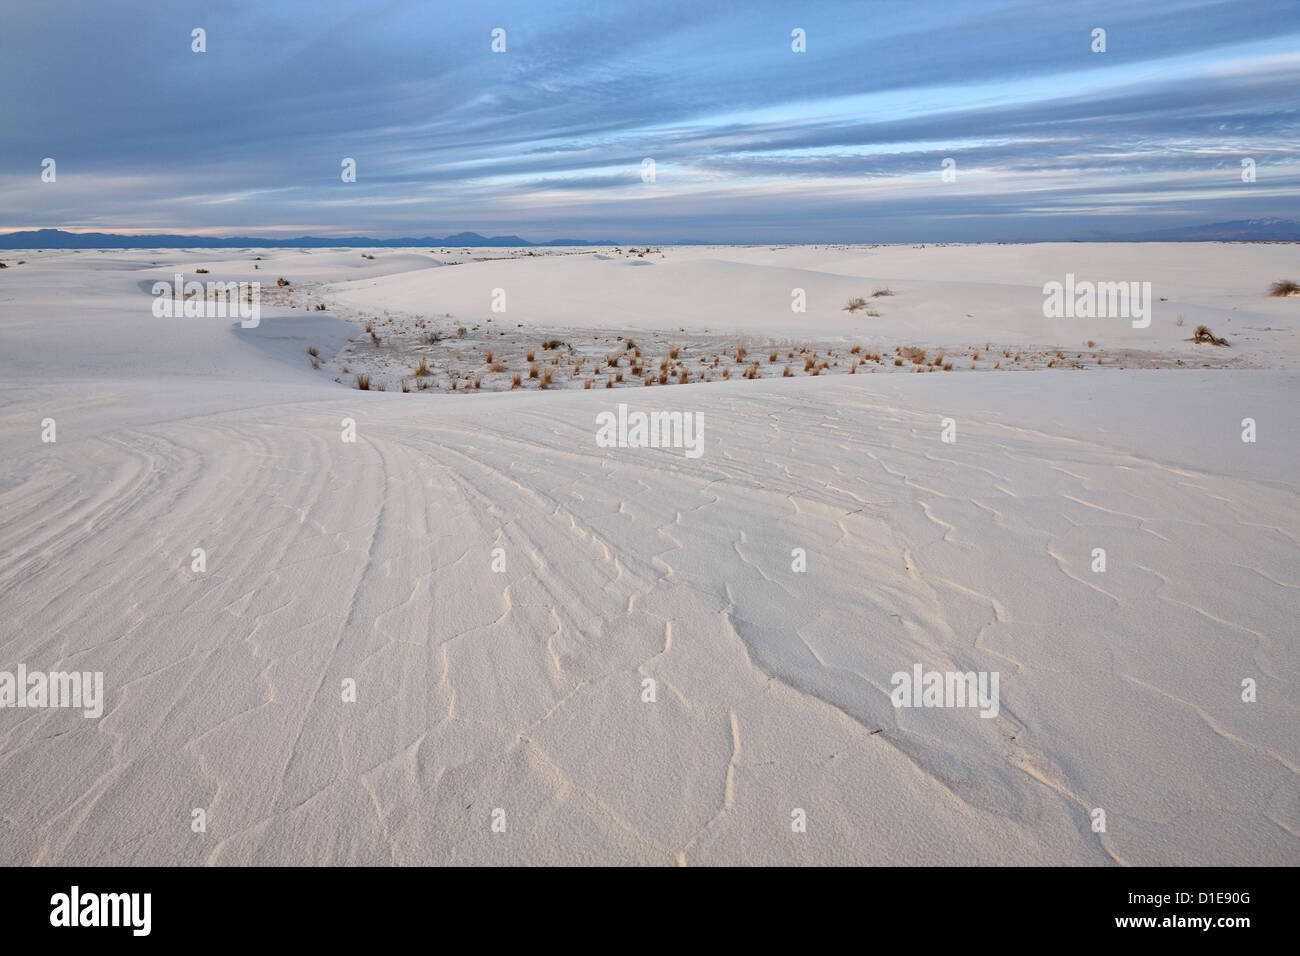 Patterns in the dunes, White Sands National Monument, New Mexico, United States of America, North America Stock Photo